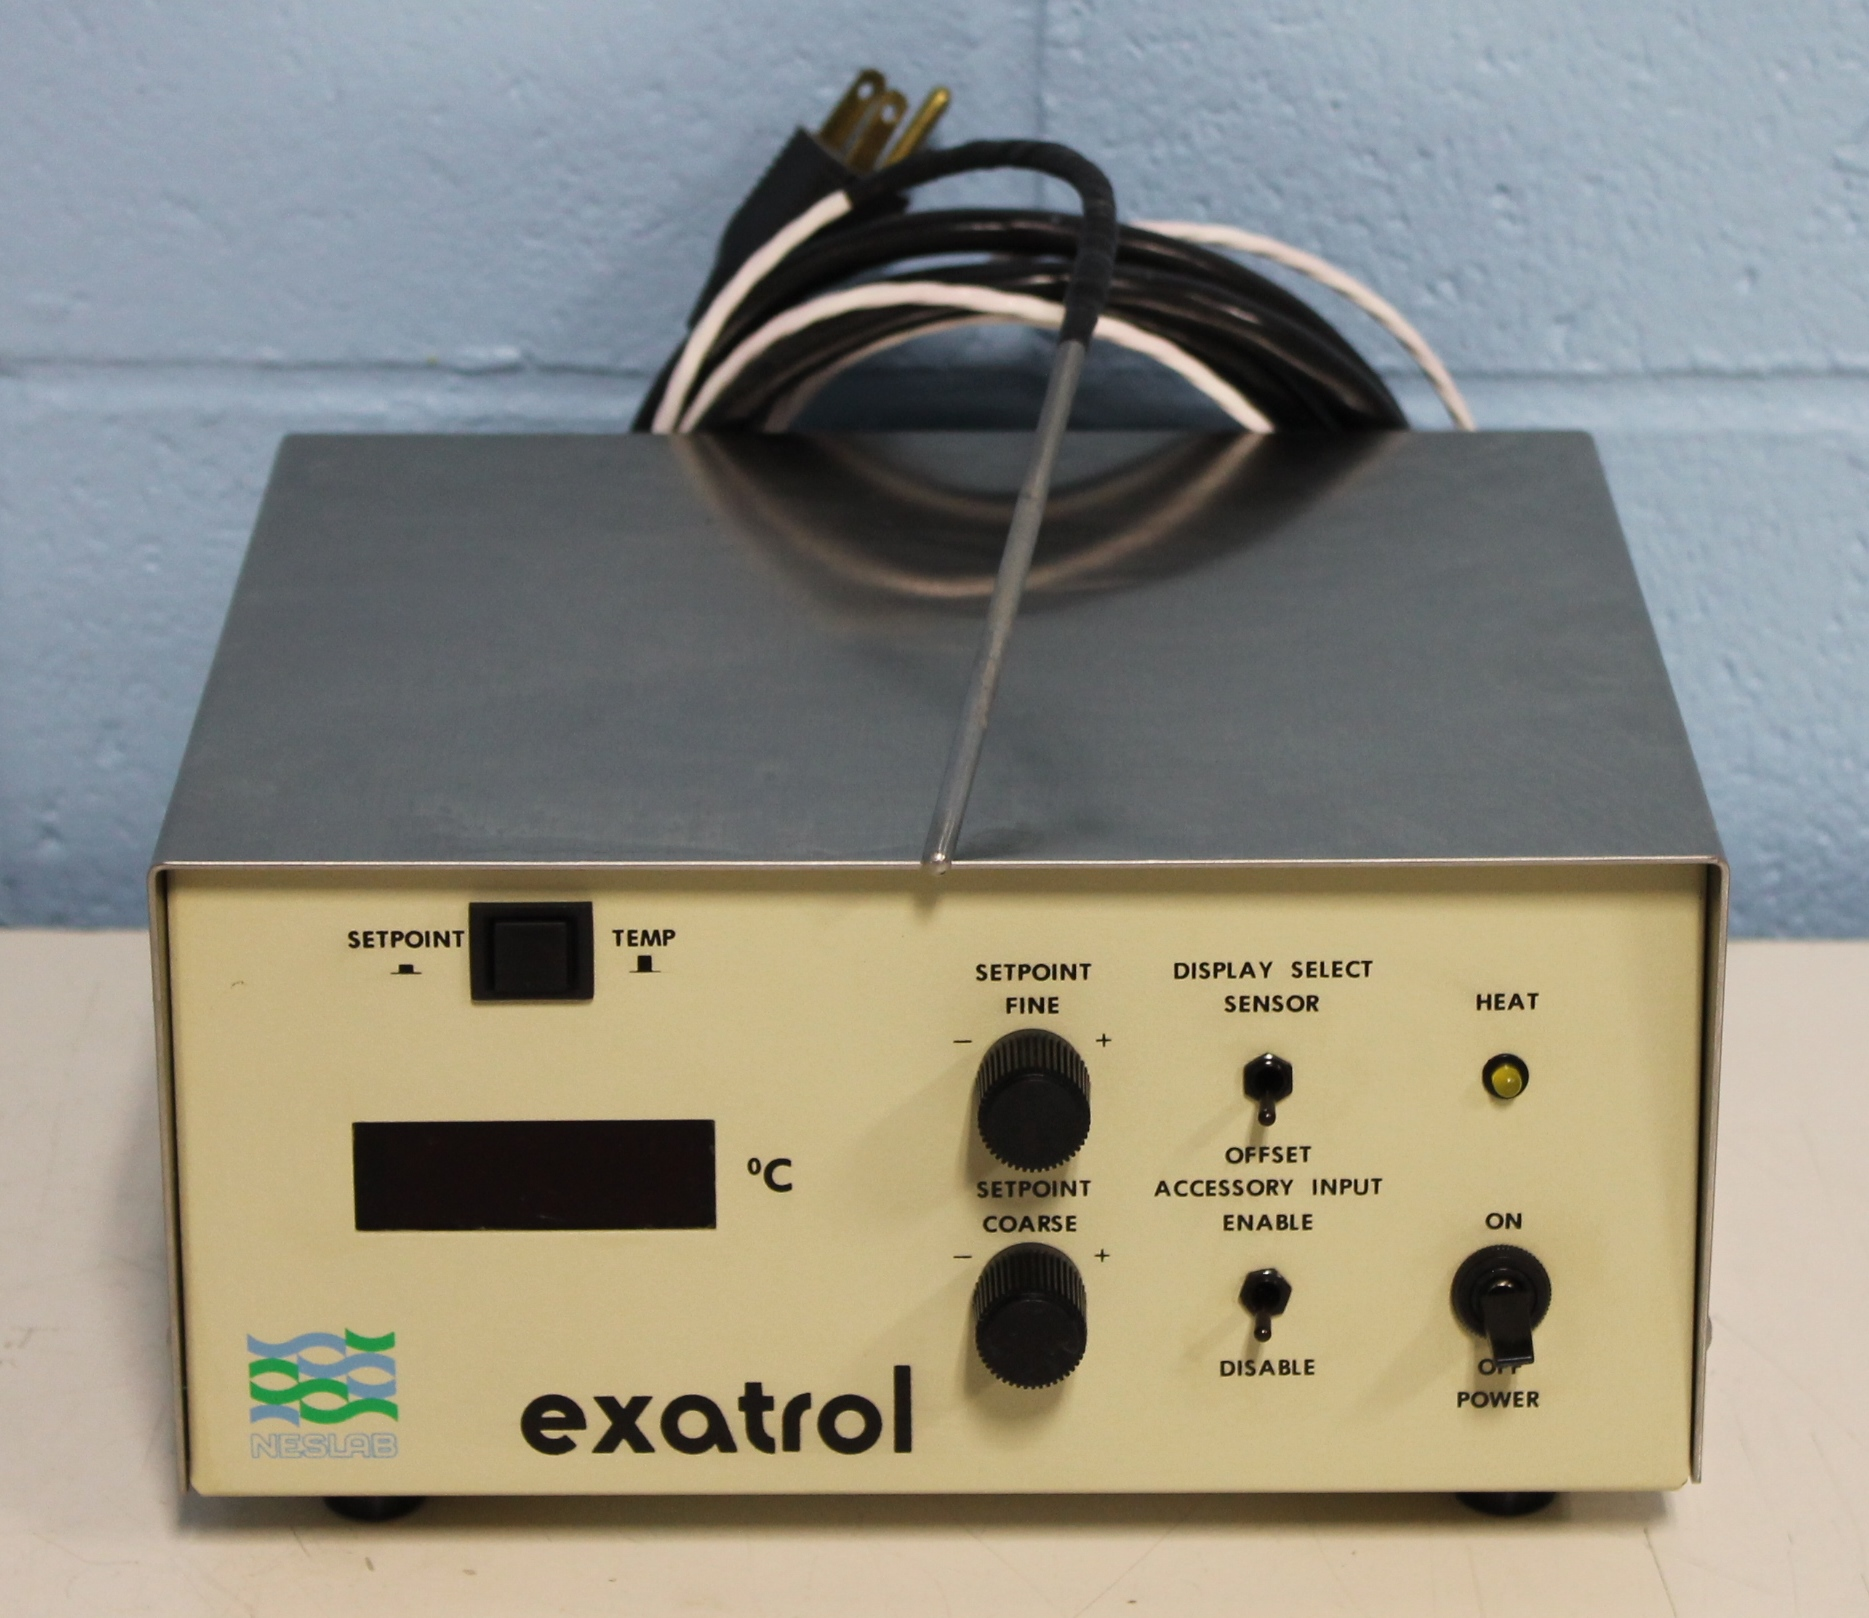 Neslab Exatrol Chiller Temp Control Unit with Probe Image